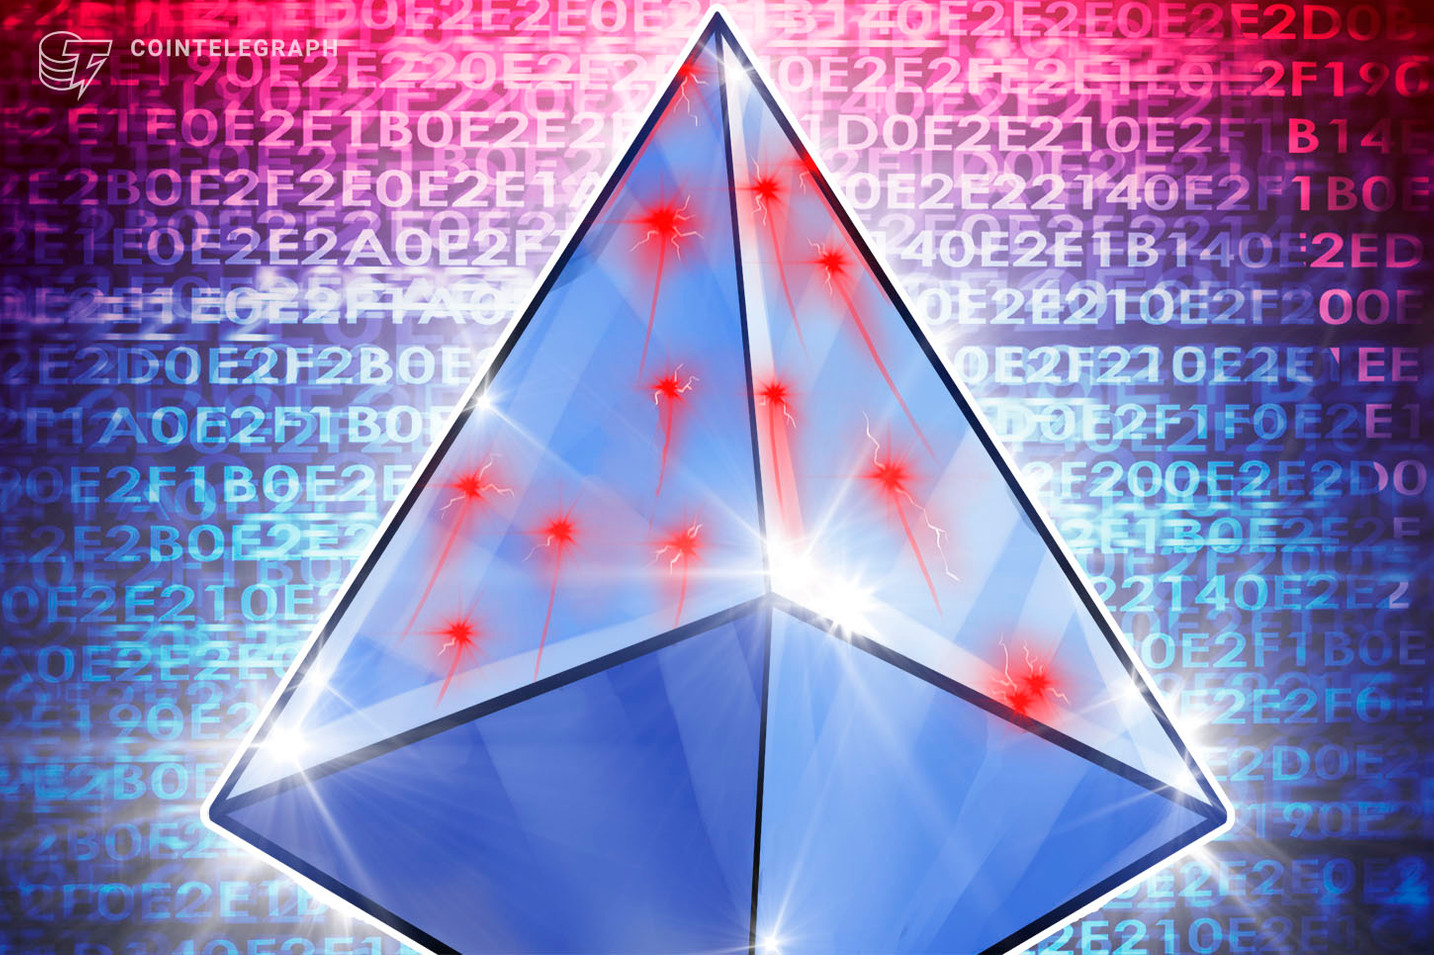 Don't expect another 2017-style altseason as Ethereum continues slump vs. Bitcoin